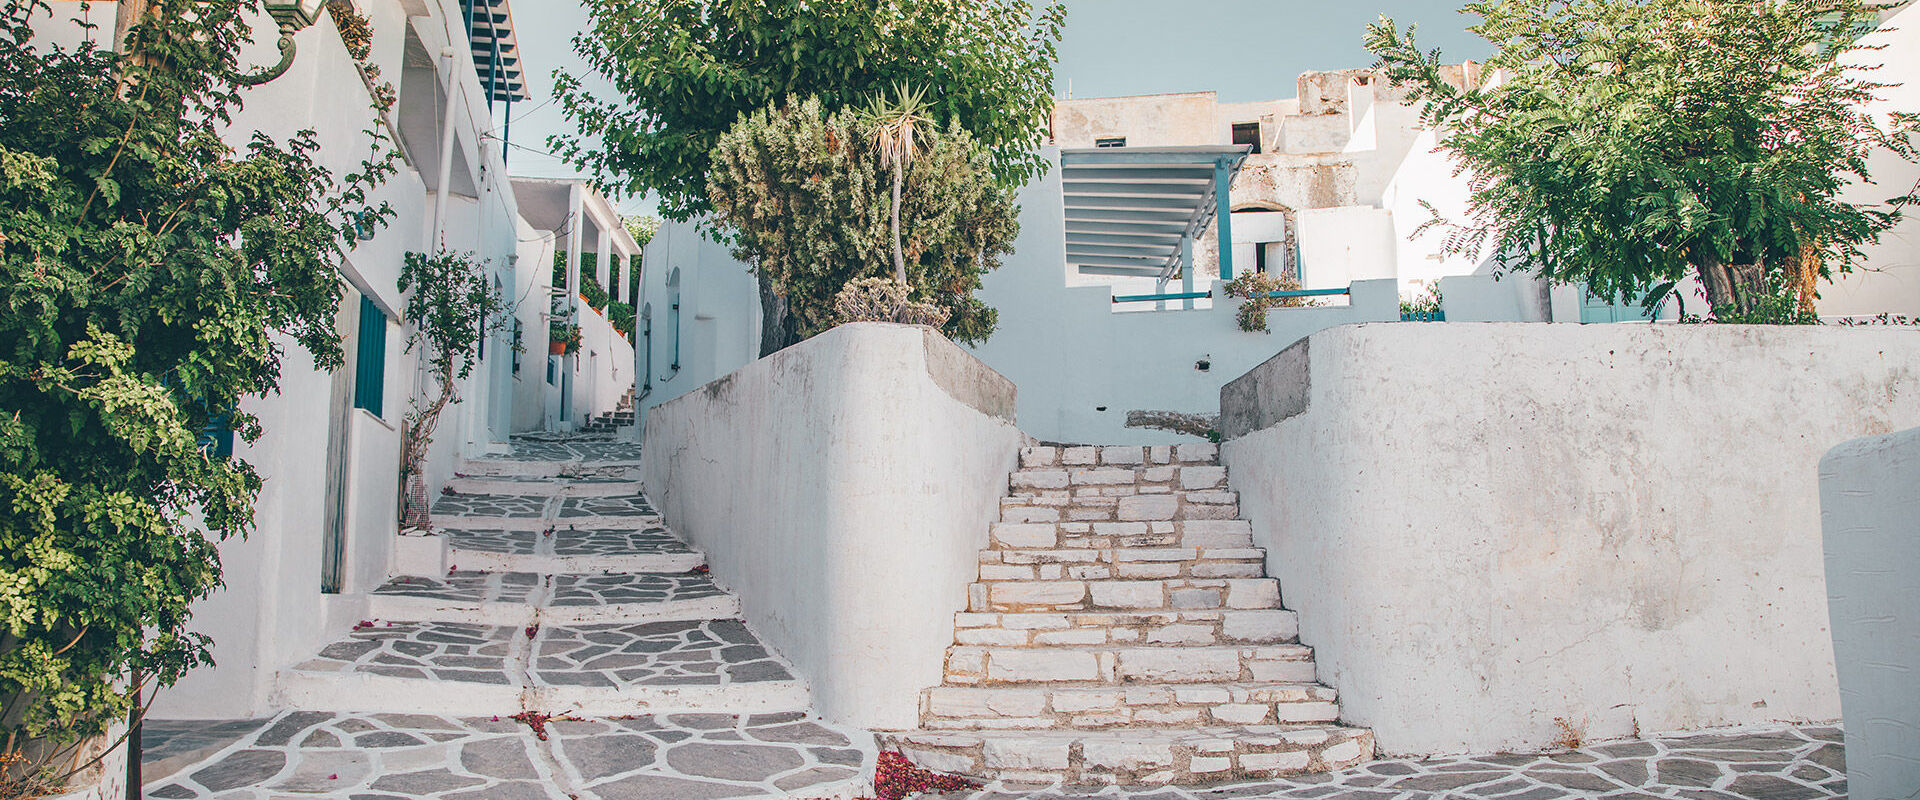 Alleyways in Marpissa village in Paros